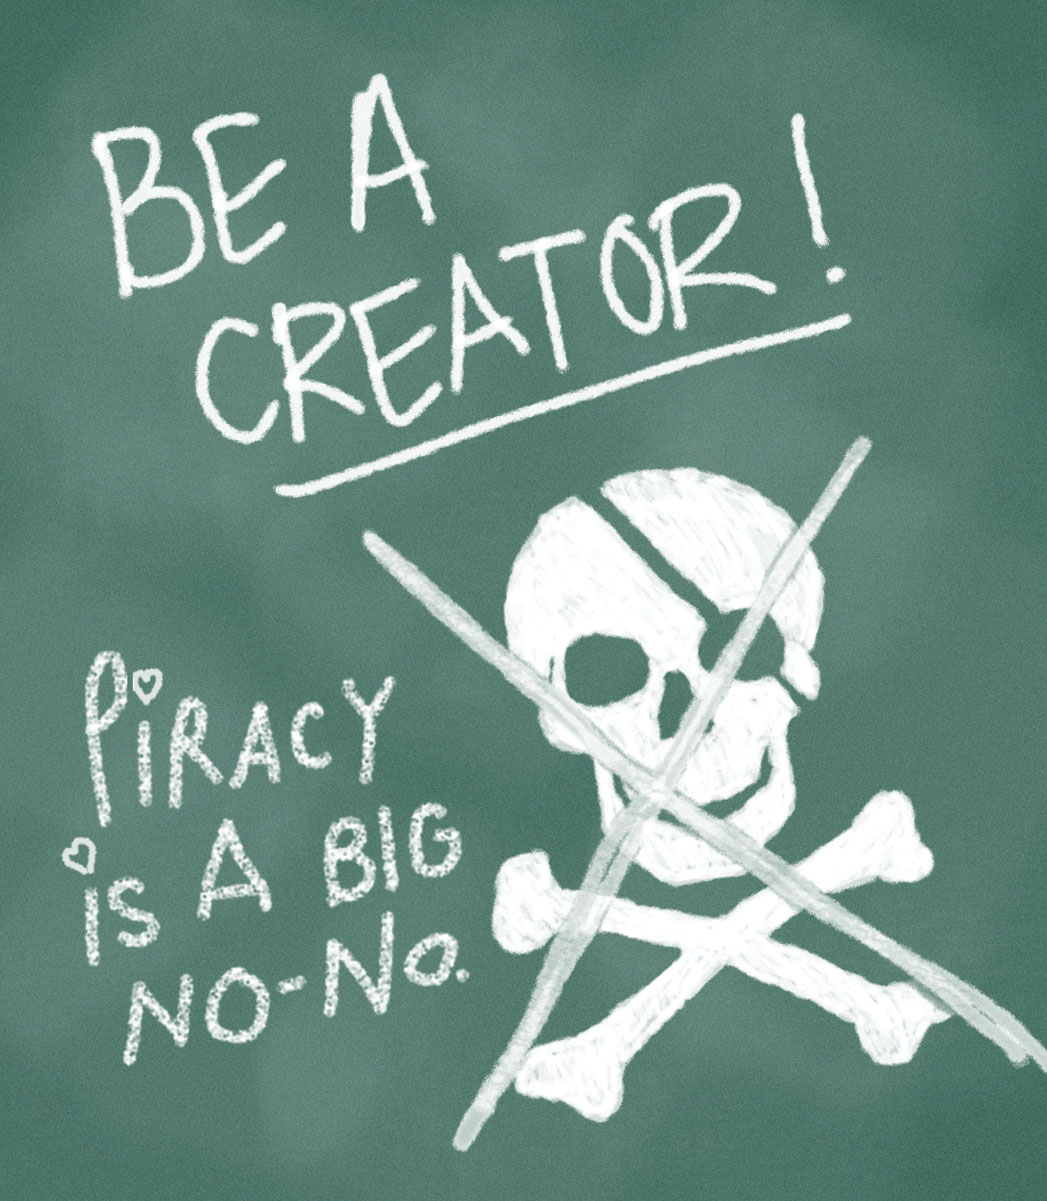 Piracy Illustration - P 2013